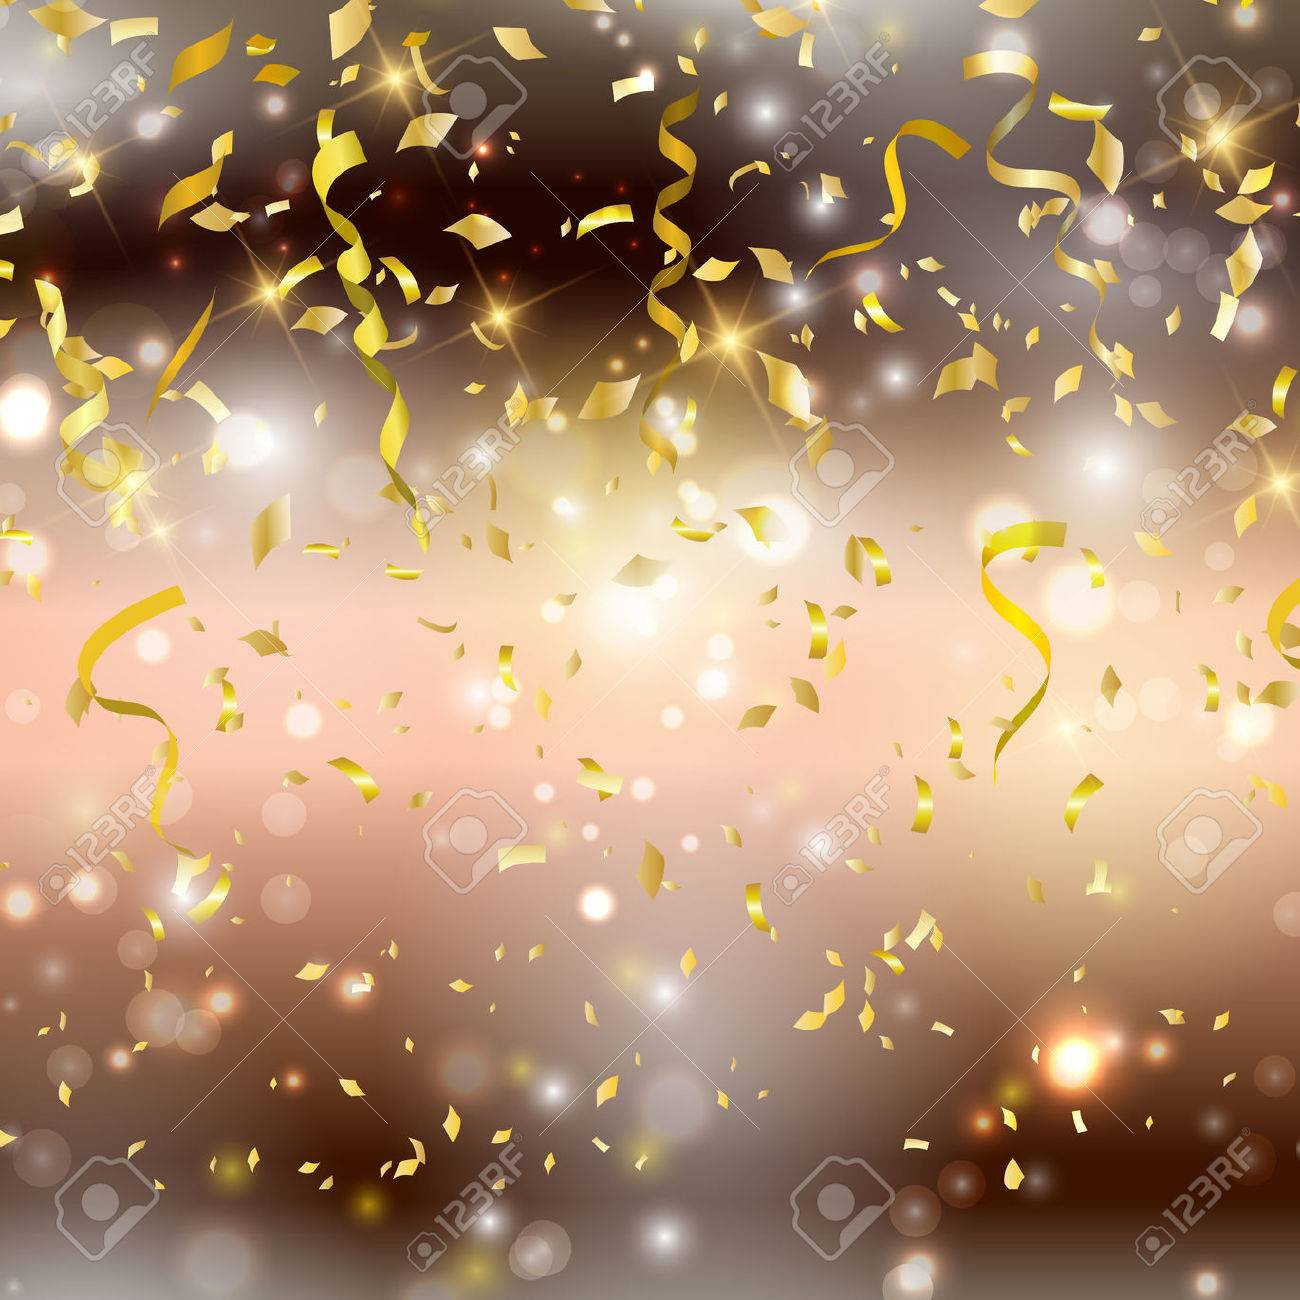 gold background with confetti and streamers stock photo picture and